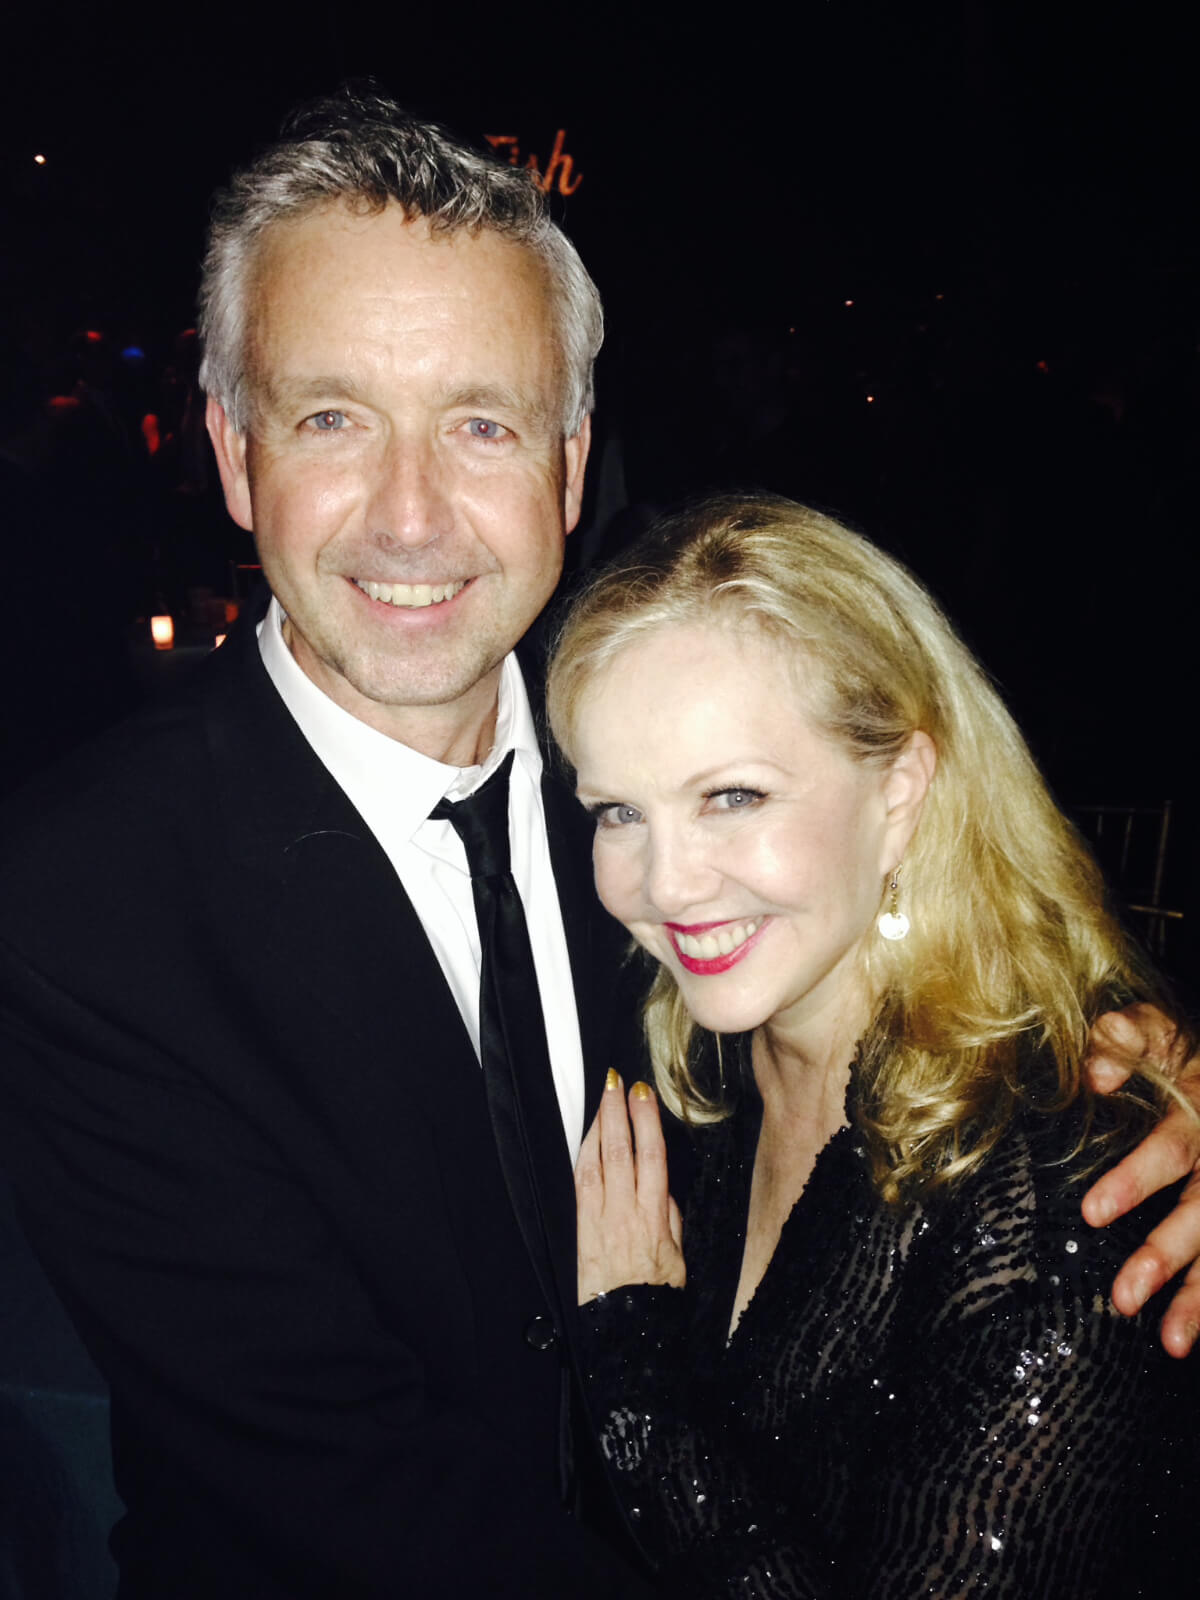 Associate Choreographer of Crazy For You, Steel Pier, Contact, Big Fish and A Christmas Carol Chris Peterson with Director/Choreographer Susan Stroman. Both are dressed in black tie attire.